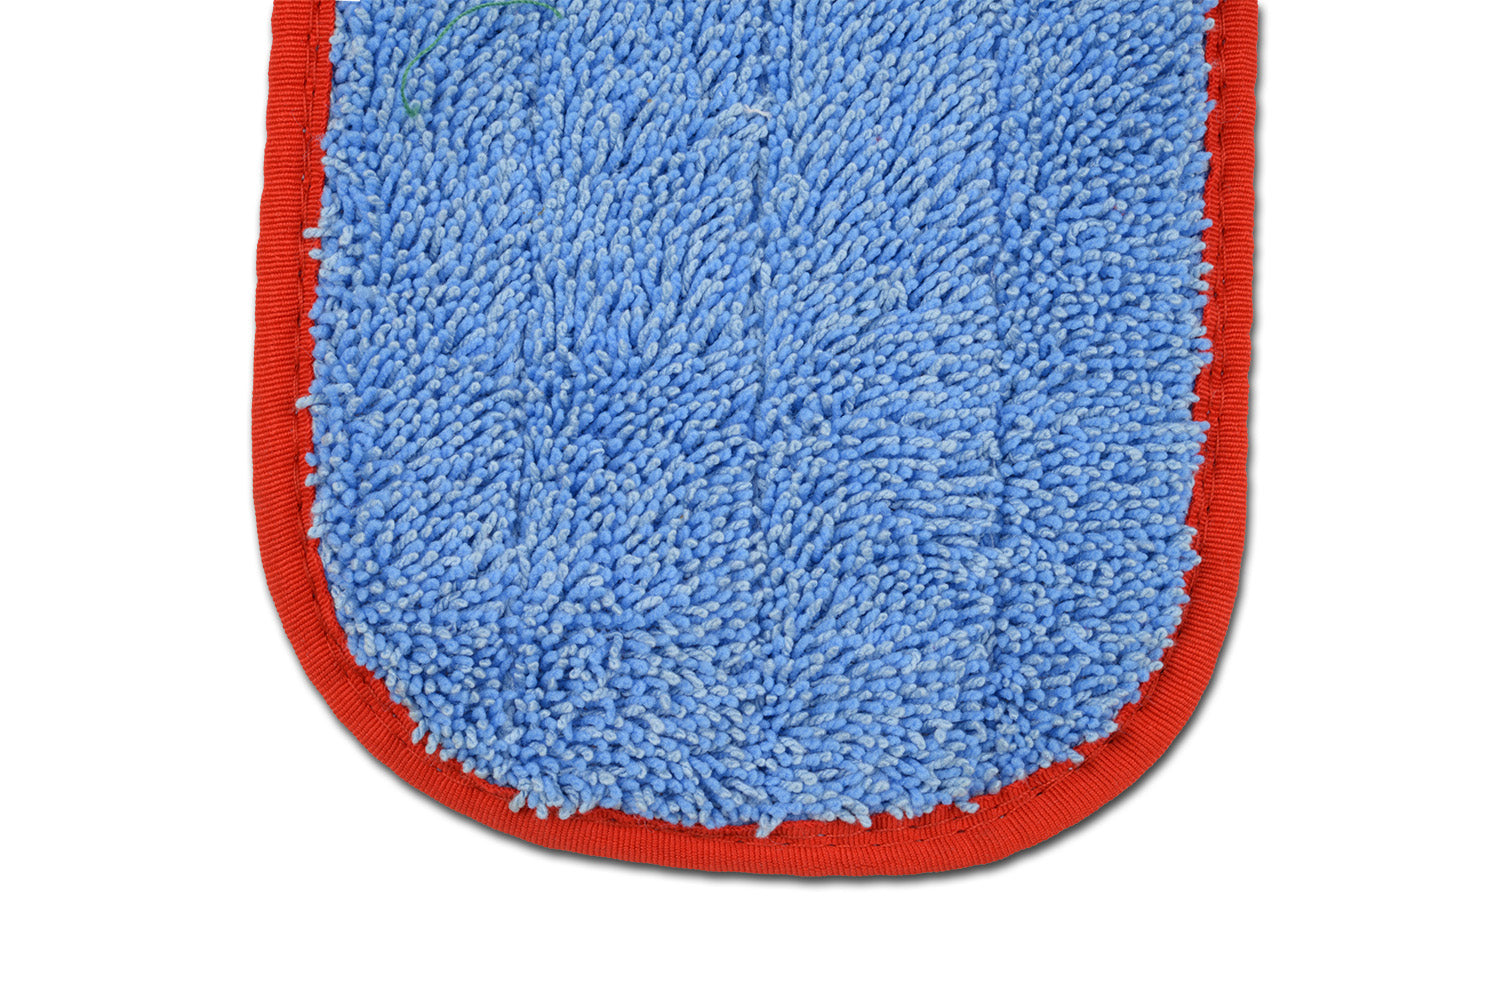 MWMCC26-Large 24 Inch color Coded Microfiber Wet Mop Pads Close Up